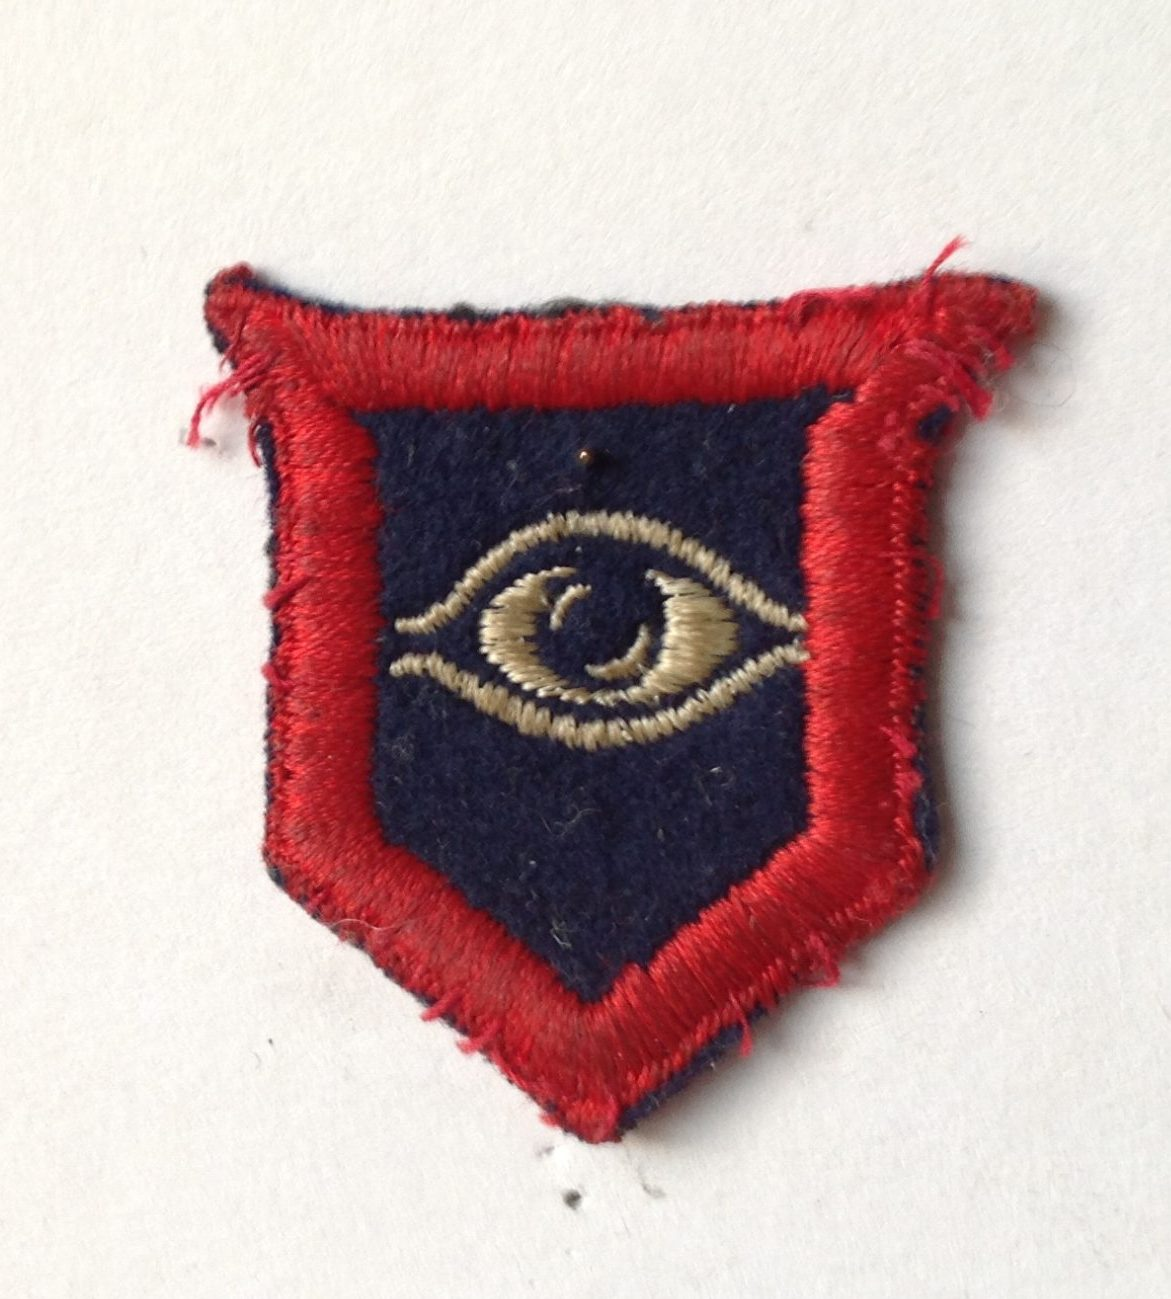 The Guards Armoured Division (GAD) sign, a red outline with an eye in the middle.